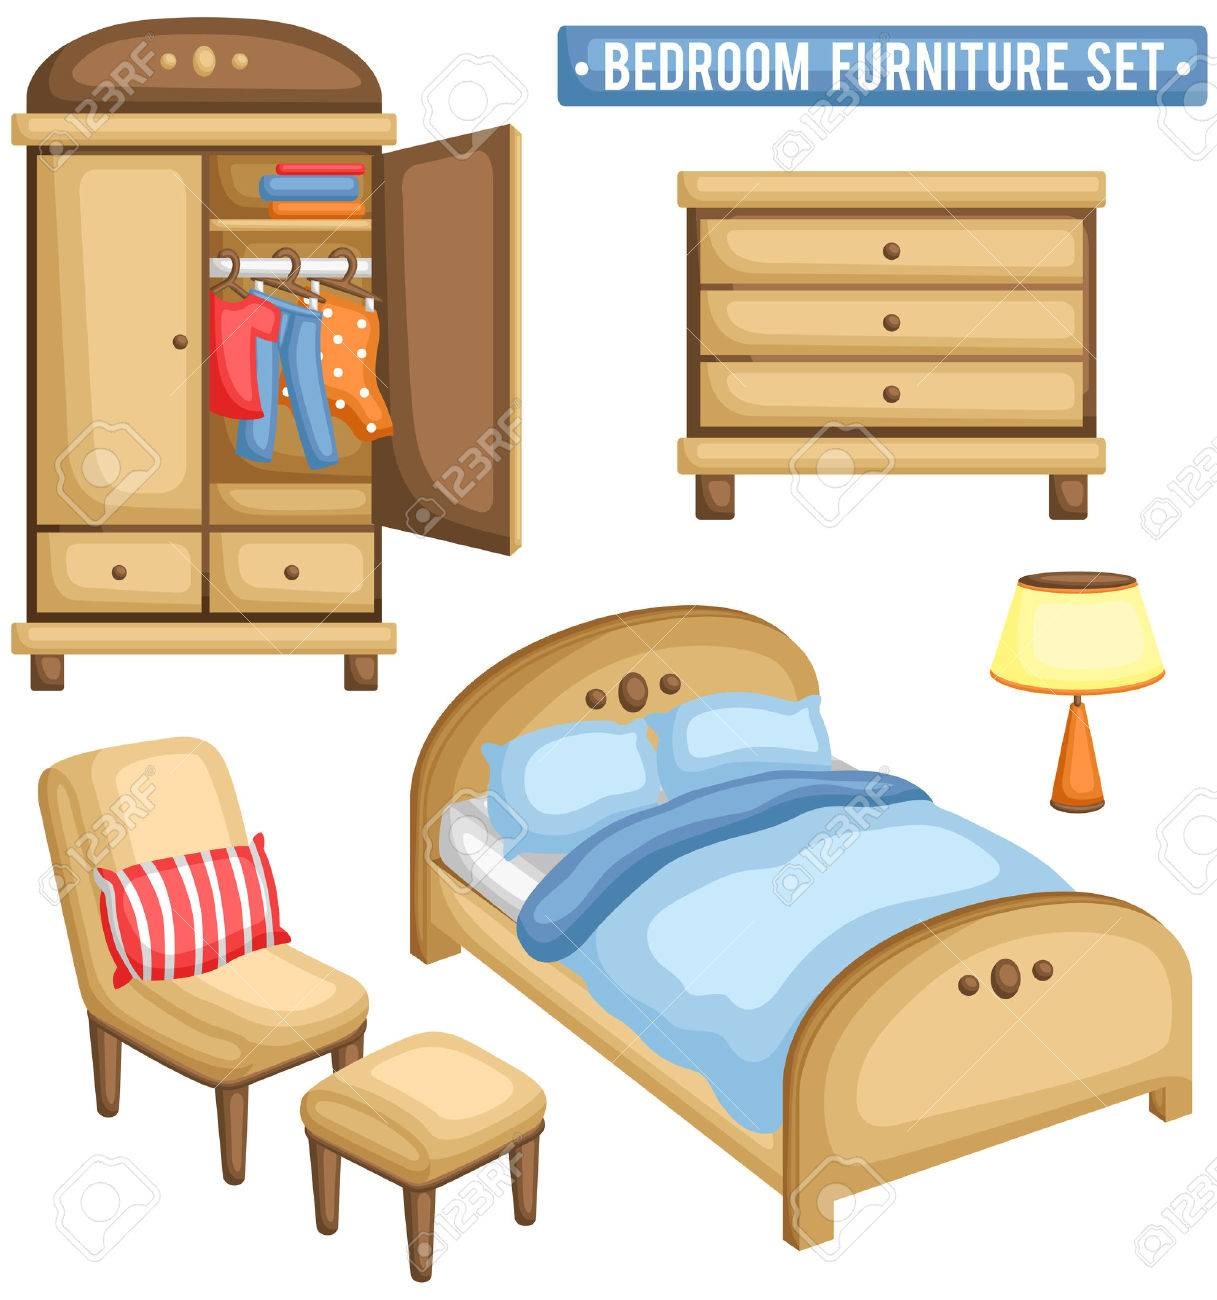 Bedroom Furniture Set Royalty Free Cliparts Vectors And Stock